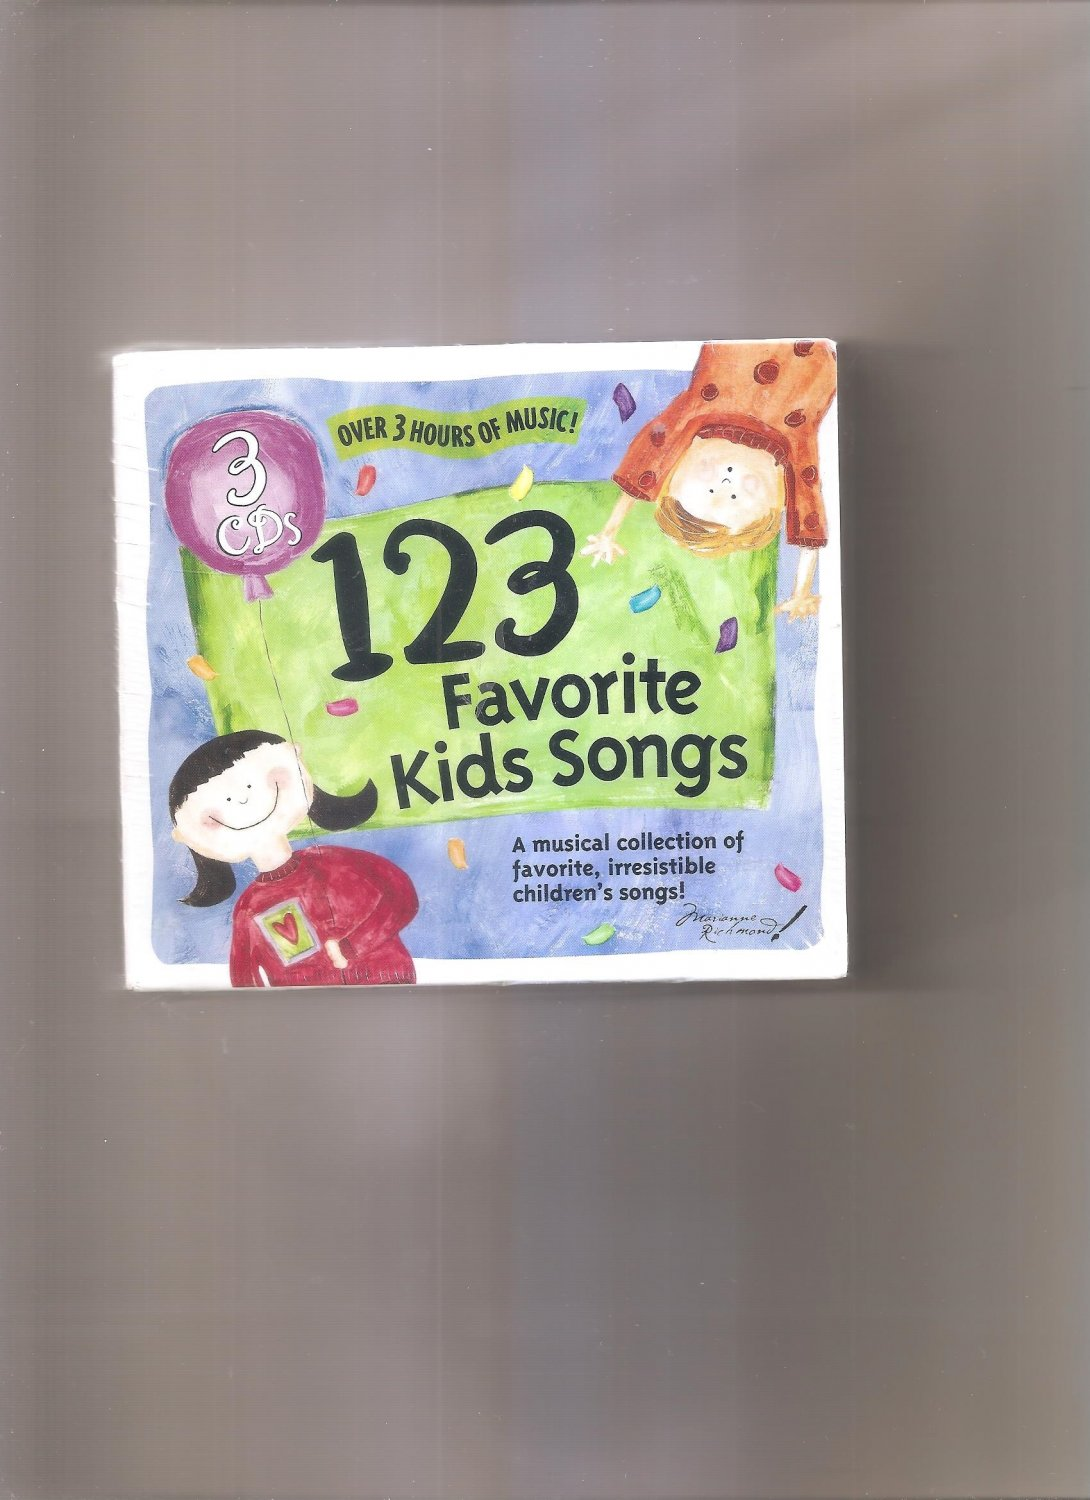 123 Favorite Kids Songs, Vol. 1-3 [Box] by Various Artists (CD, Jan-2004